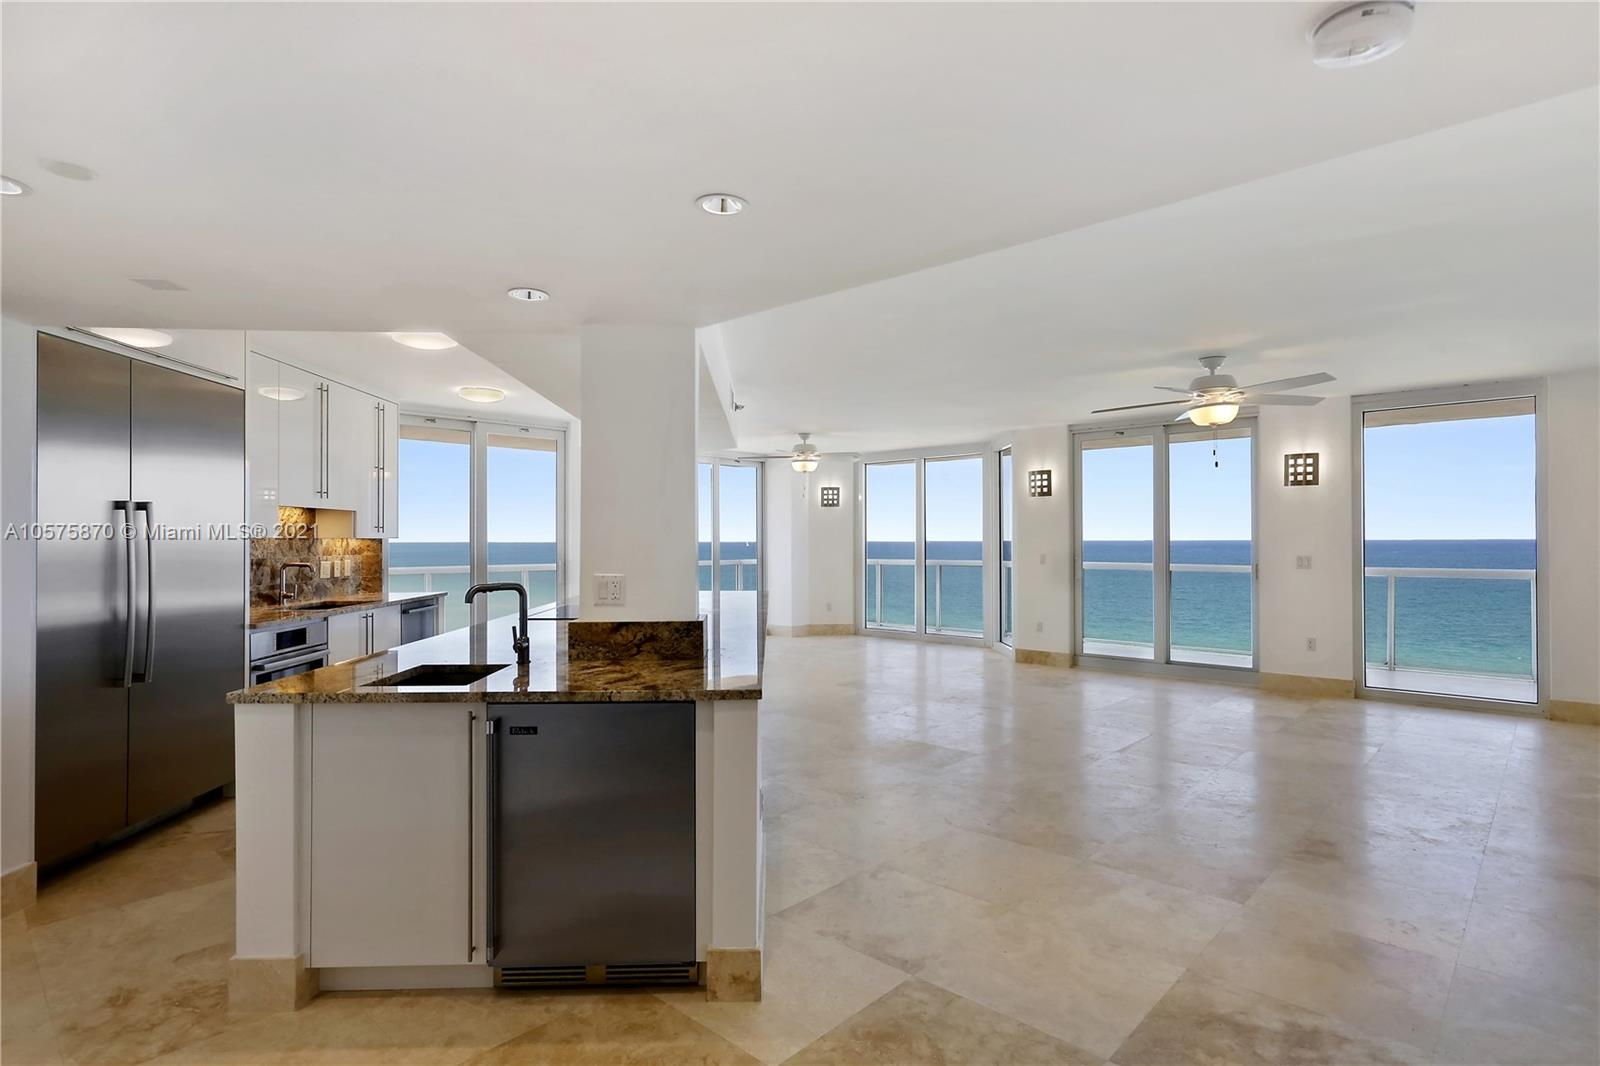 Magnificent 2BR/2.5BA split floor plan with panoramic, direct ocean views! Every inch of this 1,609SF residence has been newly & fully renovated with high-end finishes & all new top-of the line S.S appliances. New impact glass windows, sliding doors, 24X24 travertine stone floors throughout, large open kitchen with unsurpassed ocean views, wet-bar, granite countertops, custom cabinets & doors, new front loading washer/dryer, all new built-out closets, Master bath with double sinks, travertine counters, oversized shower/separate Jacuzzi tub. Most desirable corner unit in building. Approximately 431SF of wraparound terraces. Tenant will vacate unit on March 4, 2021.